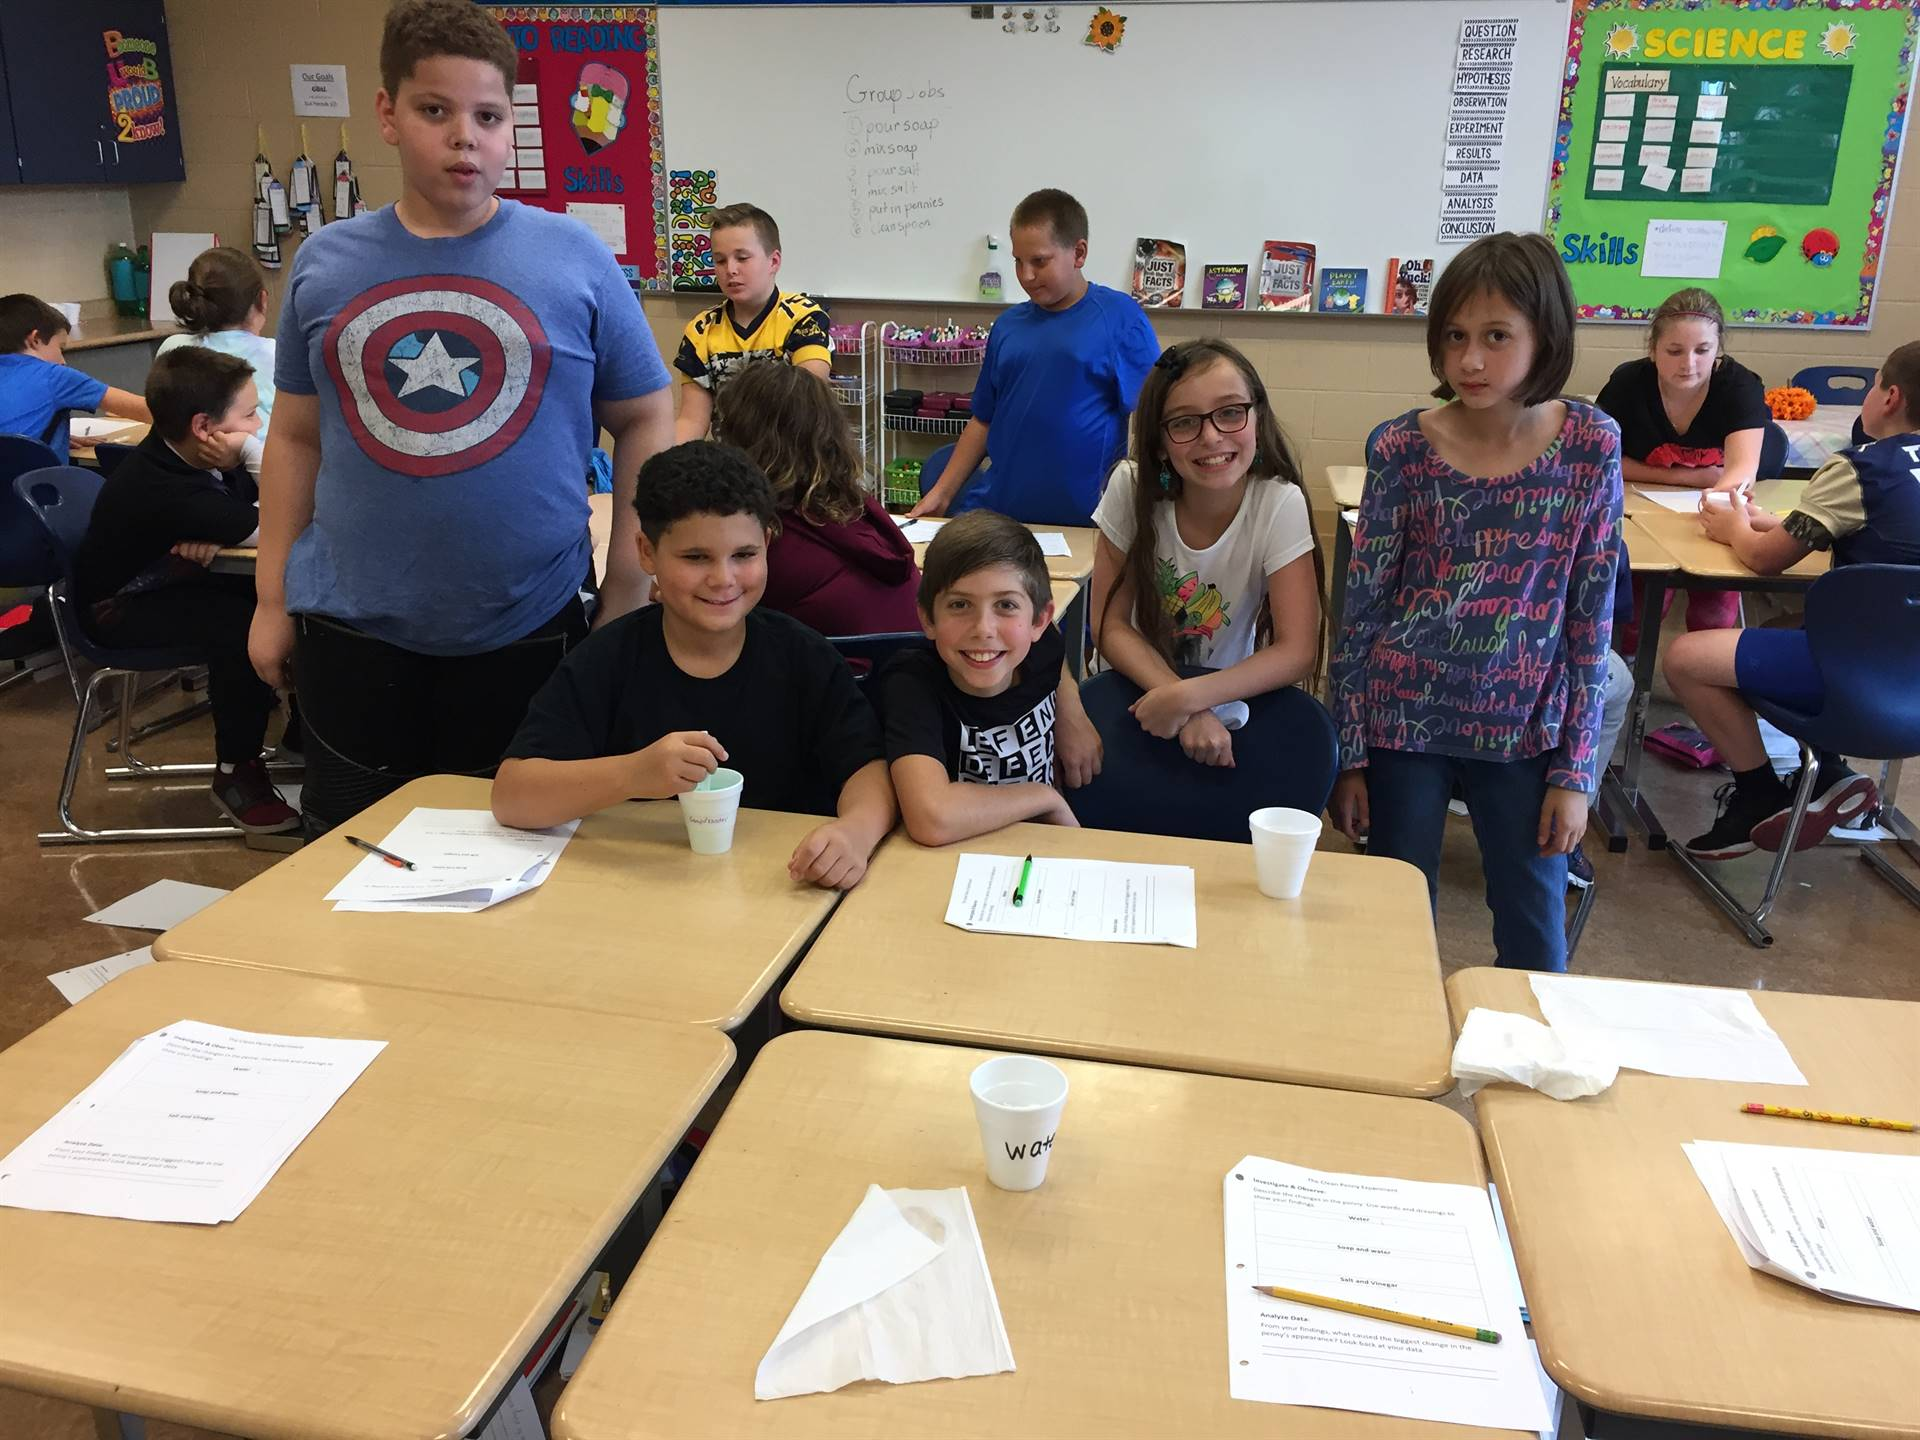 5th Grade students in Mrs. Pirigyi's Science Class conducting experiments on Pennies.